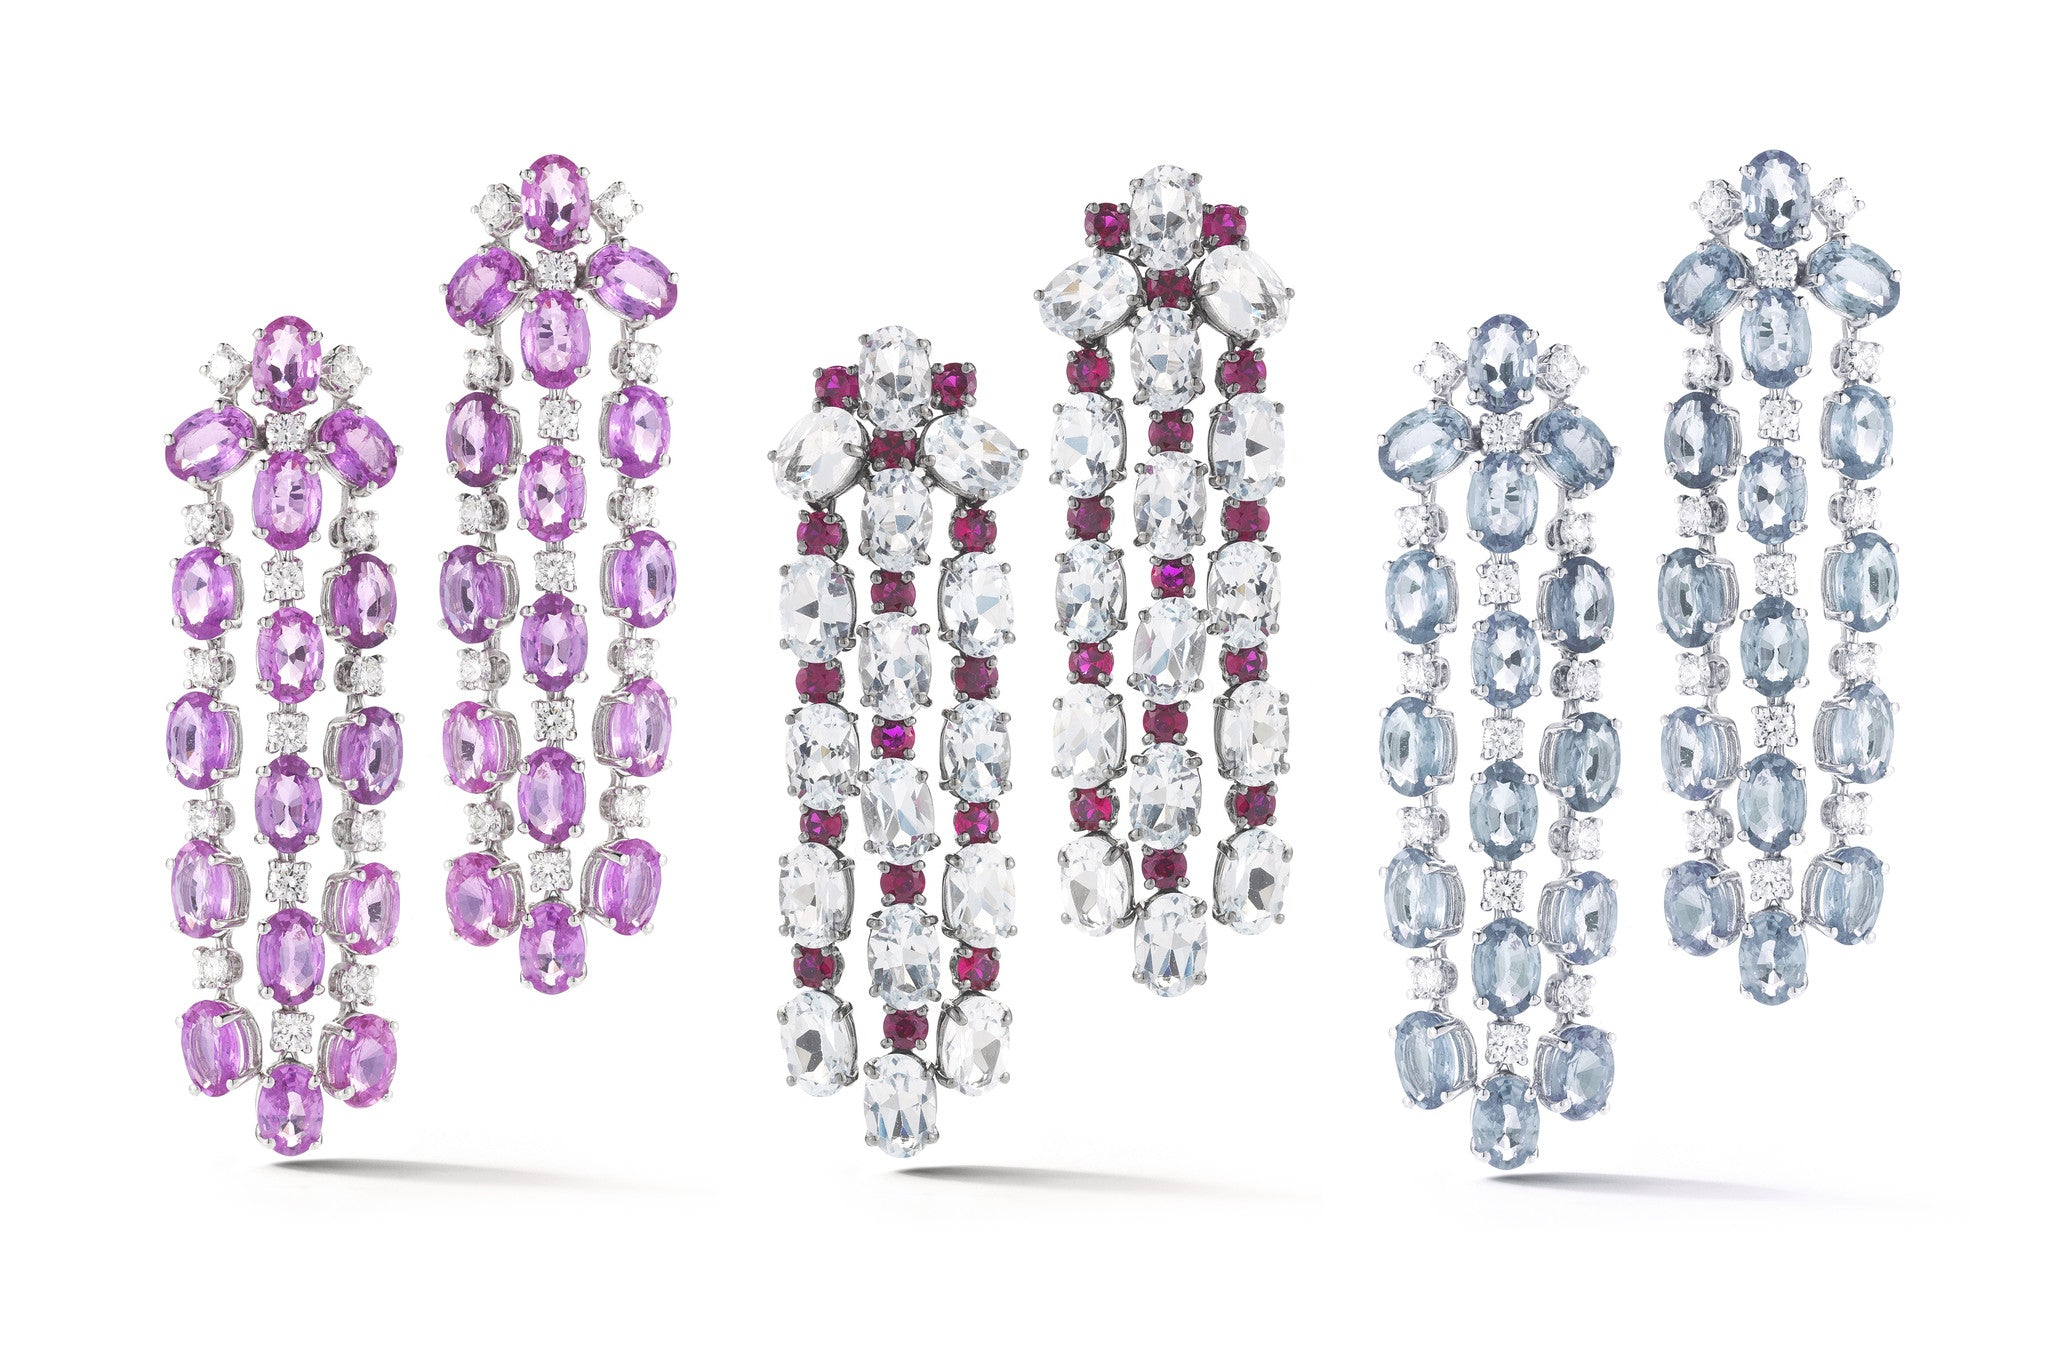 A-FURST-NIGHTLIFE-CHANDELIER-EARRINGS-PINK-SAPPHIRES-WHITE-TOPAZ-RUBIES-AQUAMARINE-DIAMONDS